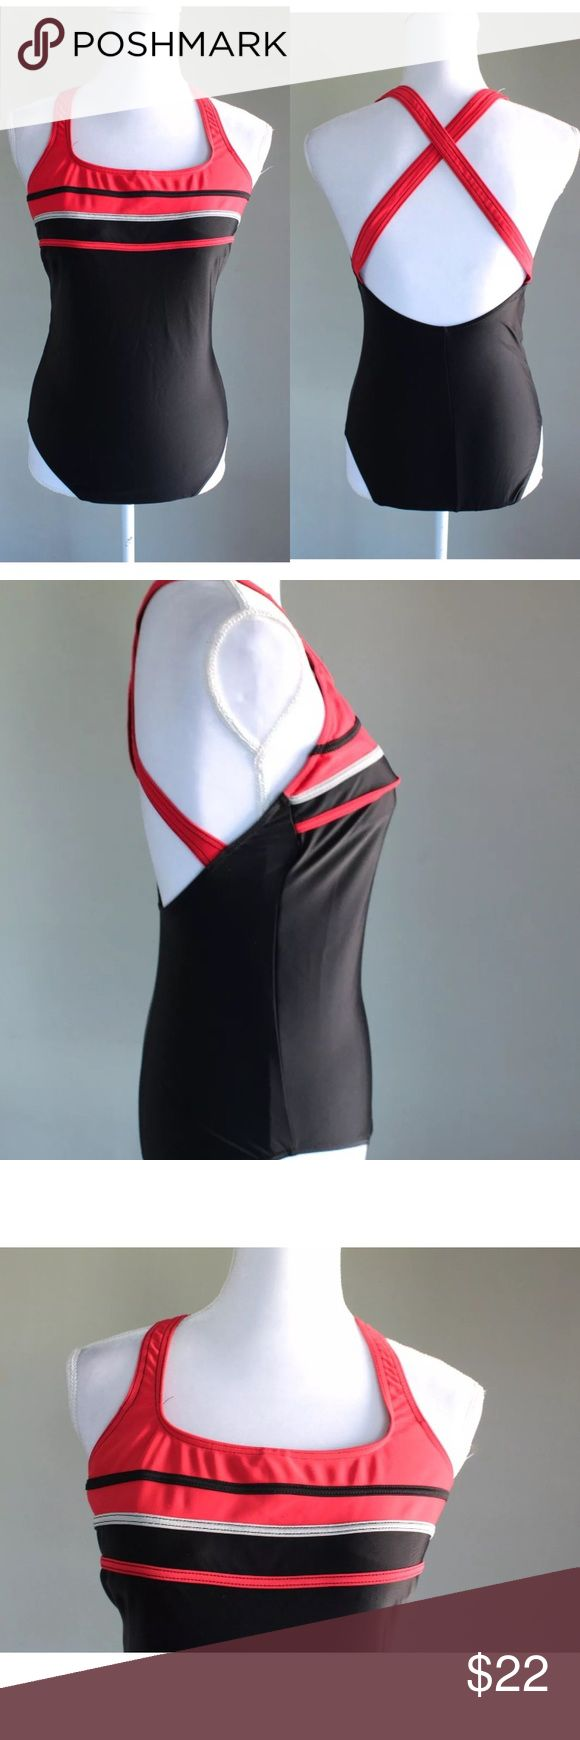 Christina One Piece Swimsuit Black Red Medium Christina women's full piece bathing suit in a truly classic design in black with red detailing. Size medium and in great condition. christina Swim One Pieces